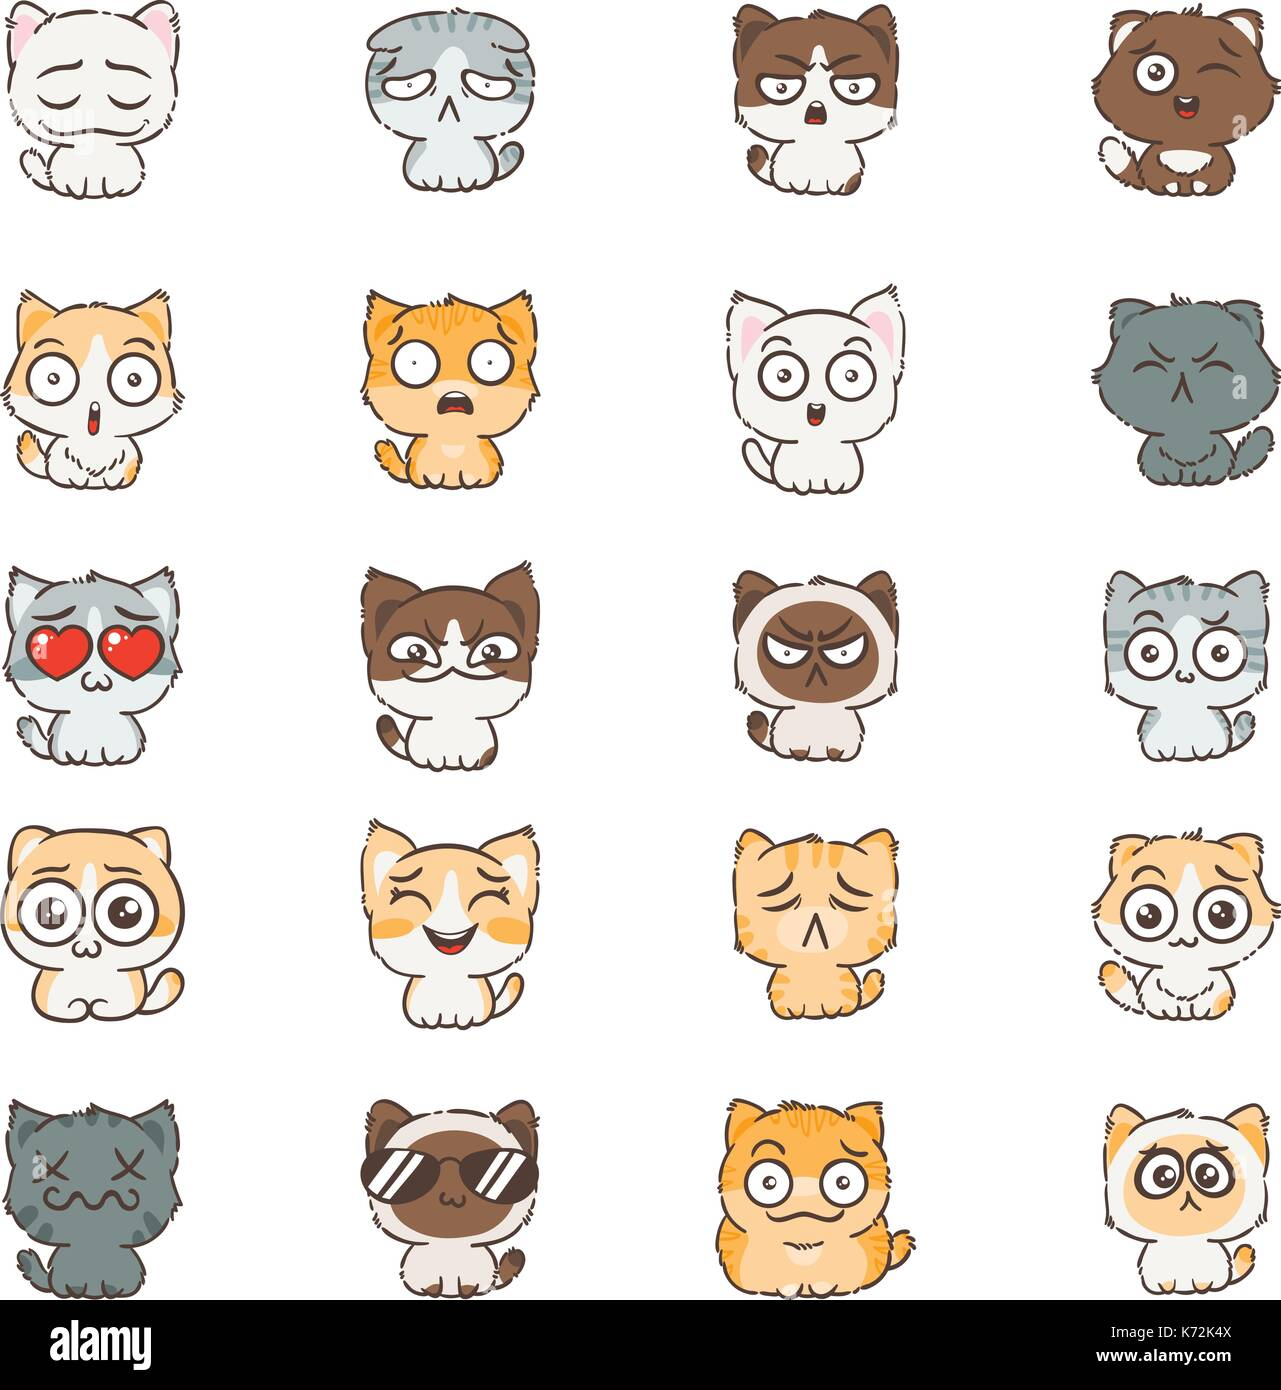 cute cartoon cats and dogs with different emotions sticker stock